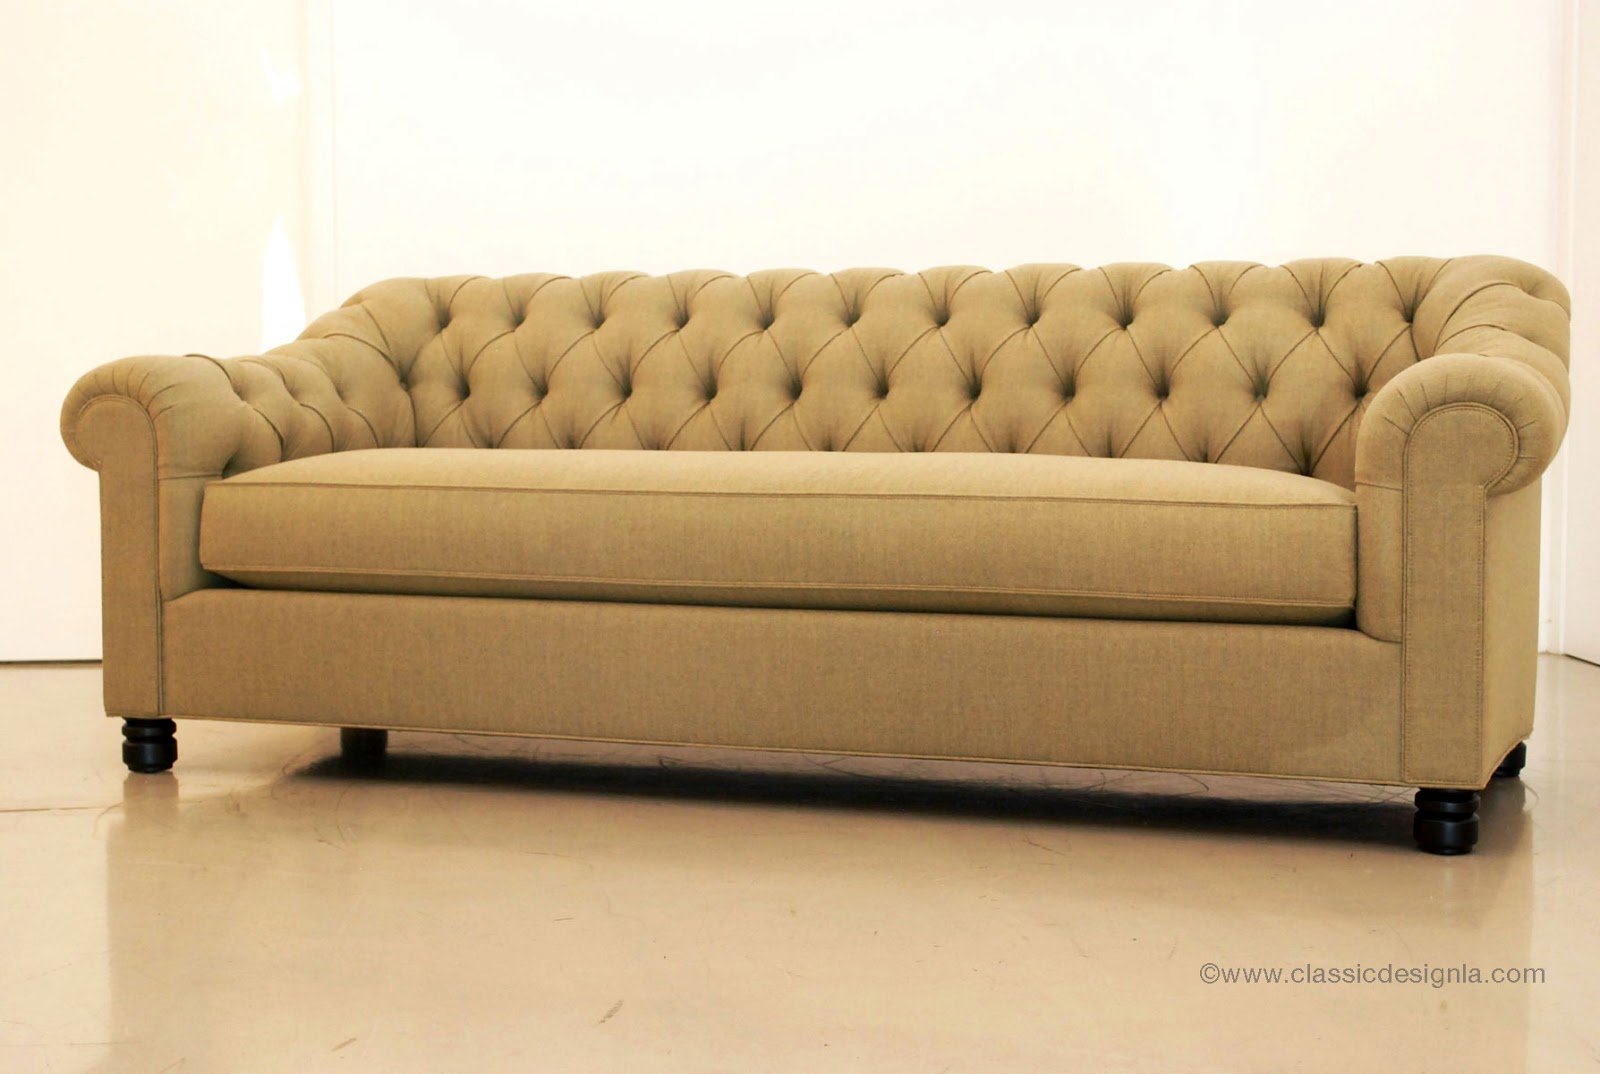 Sofas For Sale In York Xifulai Office Furniture Co Ltd